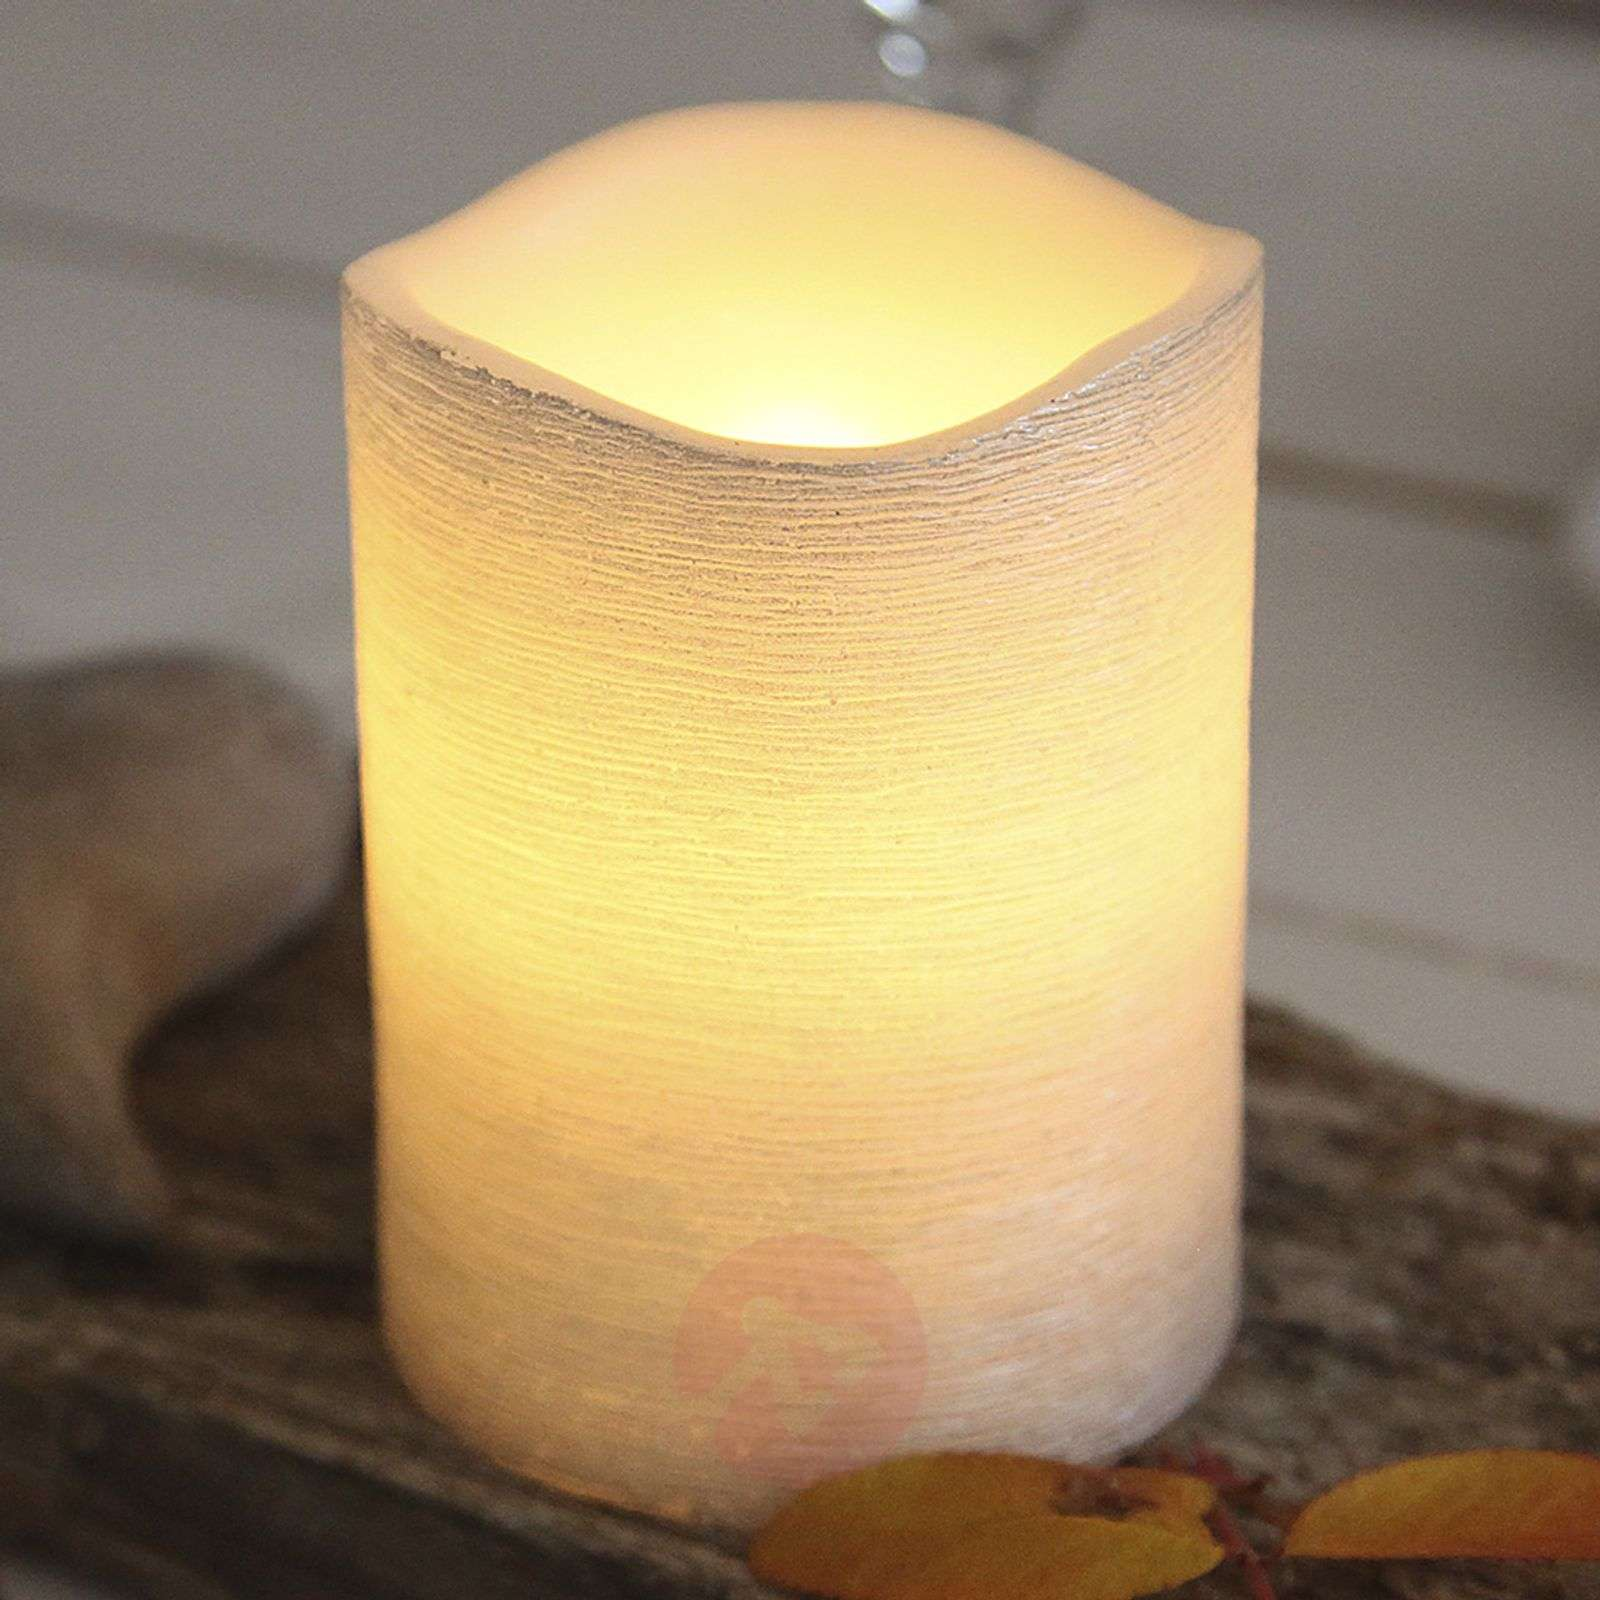 White real waxLED candle Linda structured 10cm-1522547-01